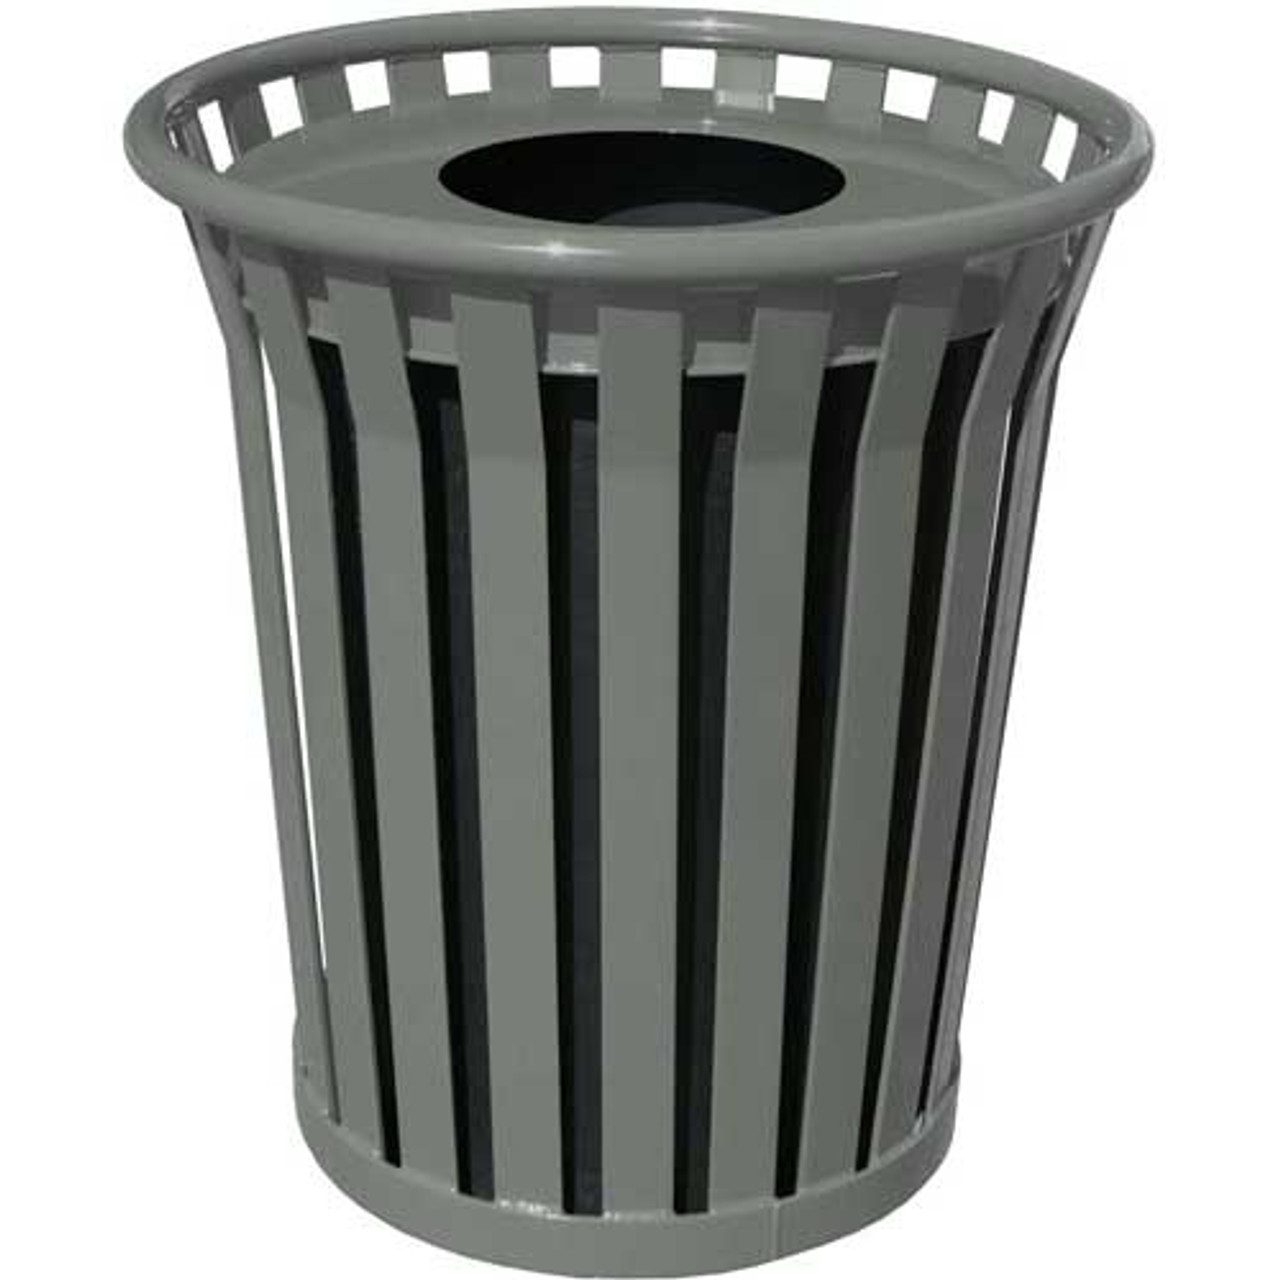 Witt 36 Gallon WC3600-FT-SLV Outdoor Waste Receptacle Silver